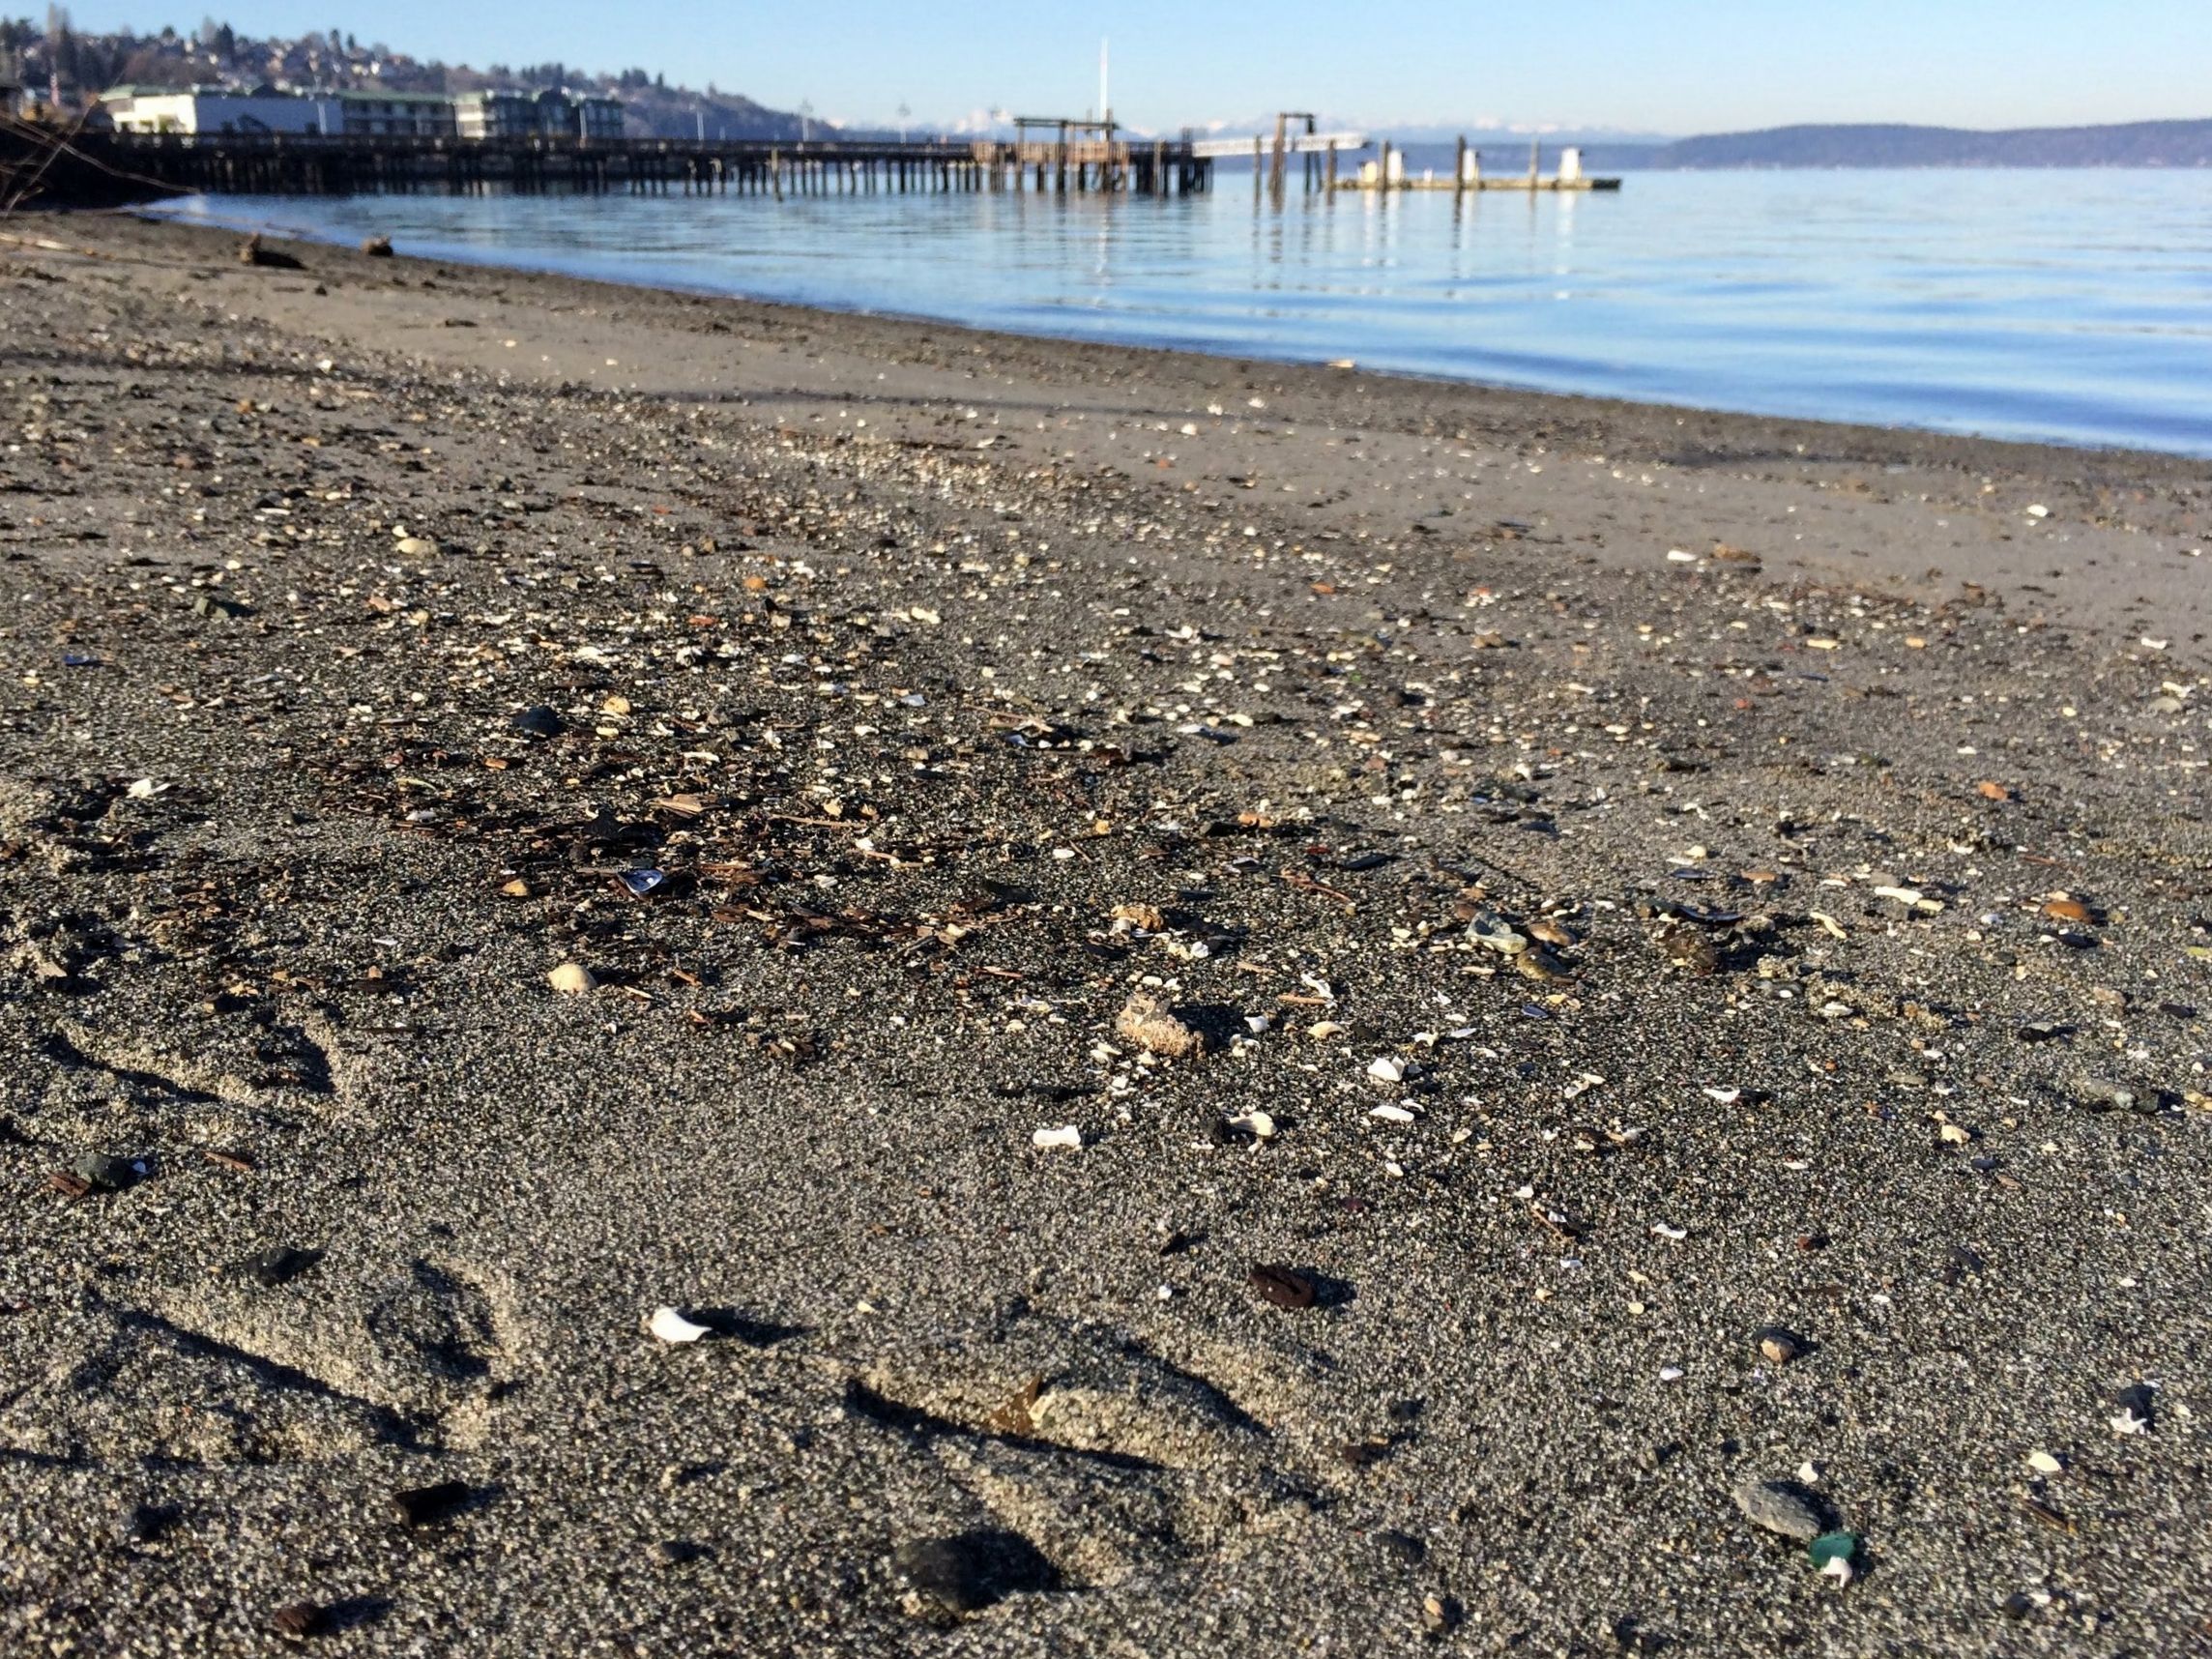 Bird tracks and shells on the shore of Commencement Bay.